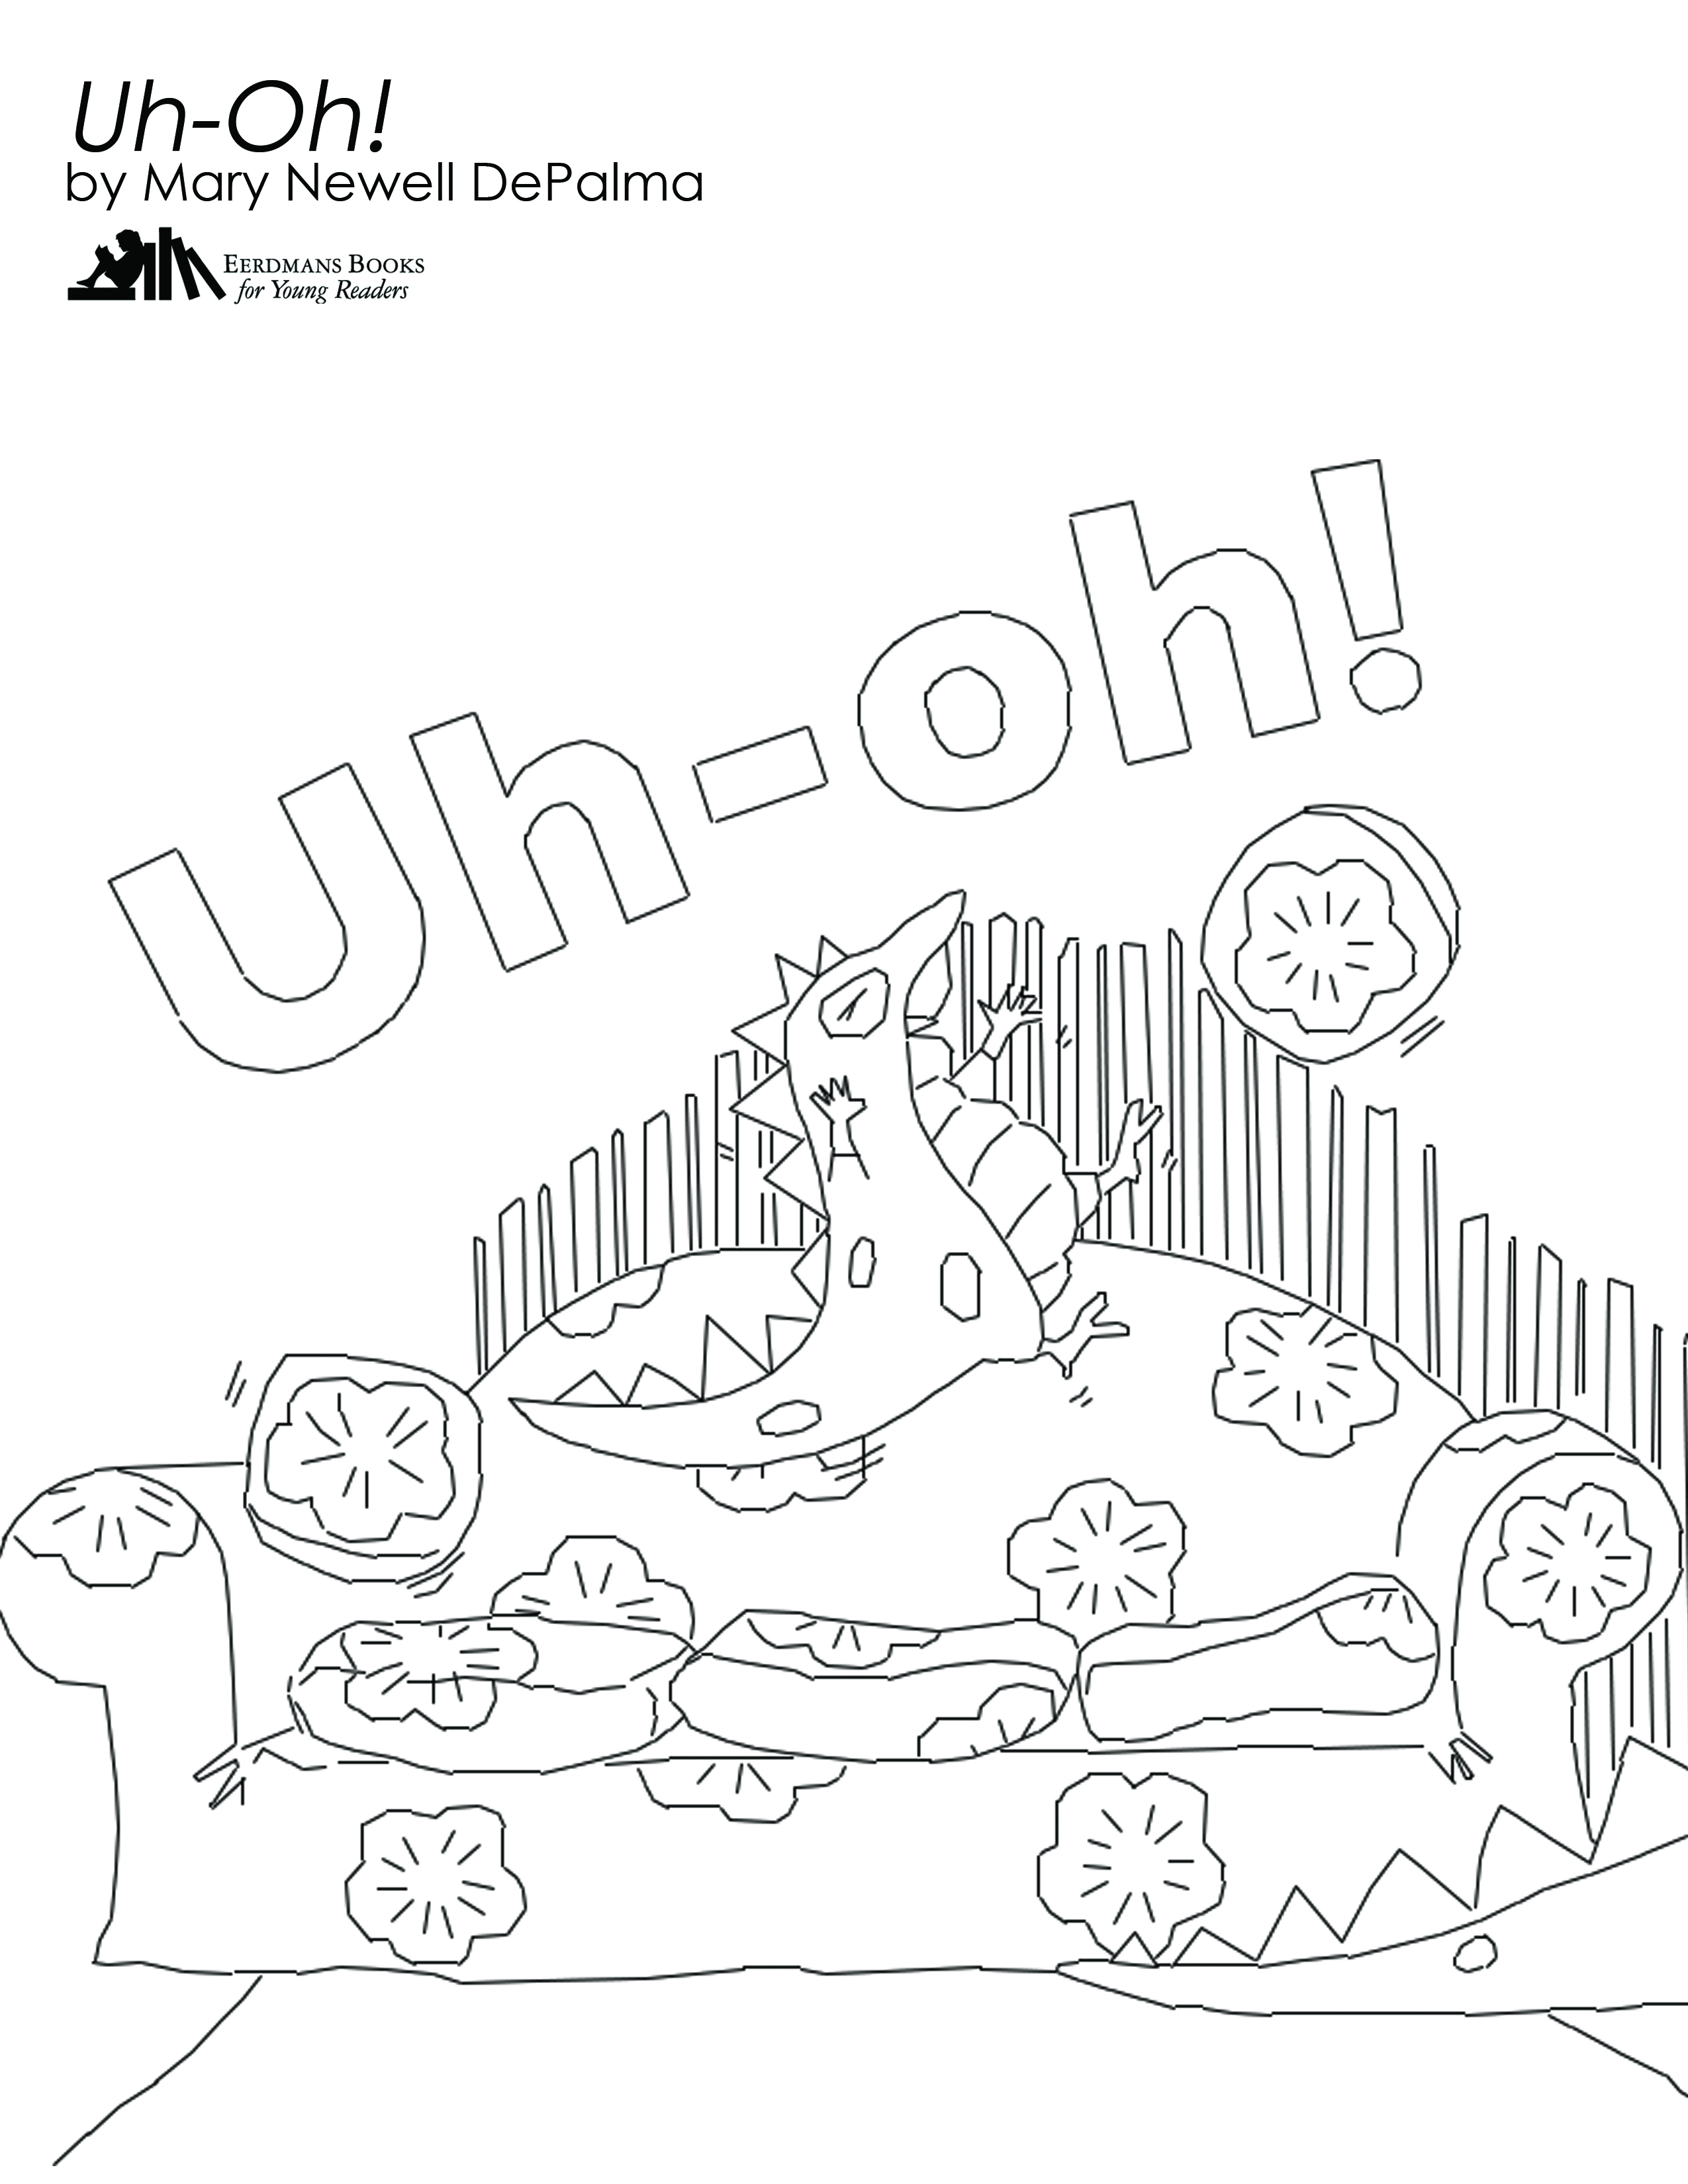 cover cough coloring pages - photo#11